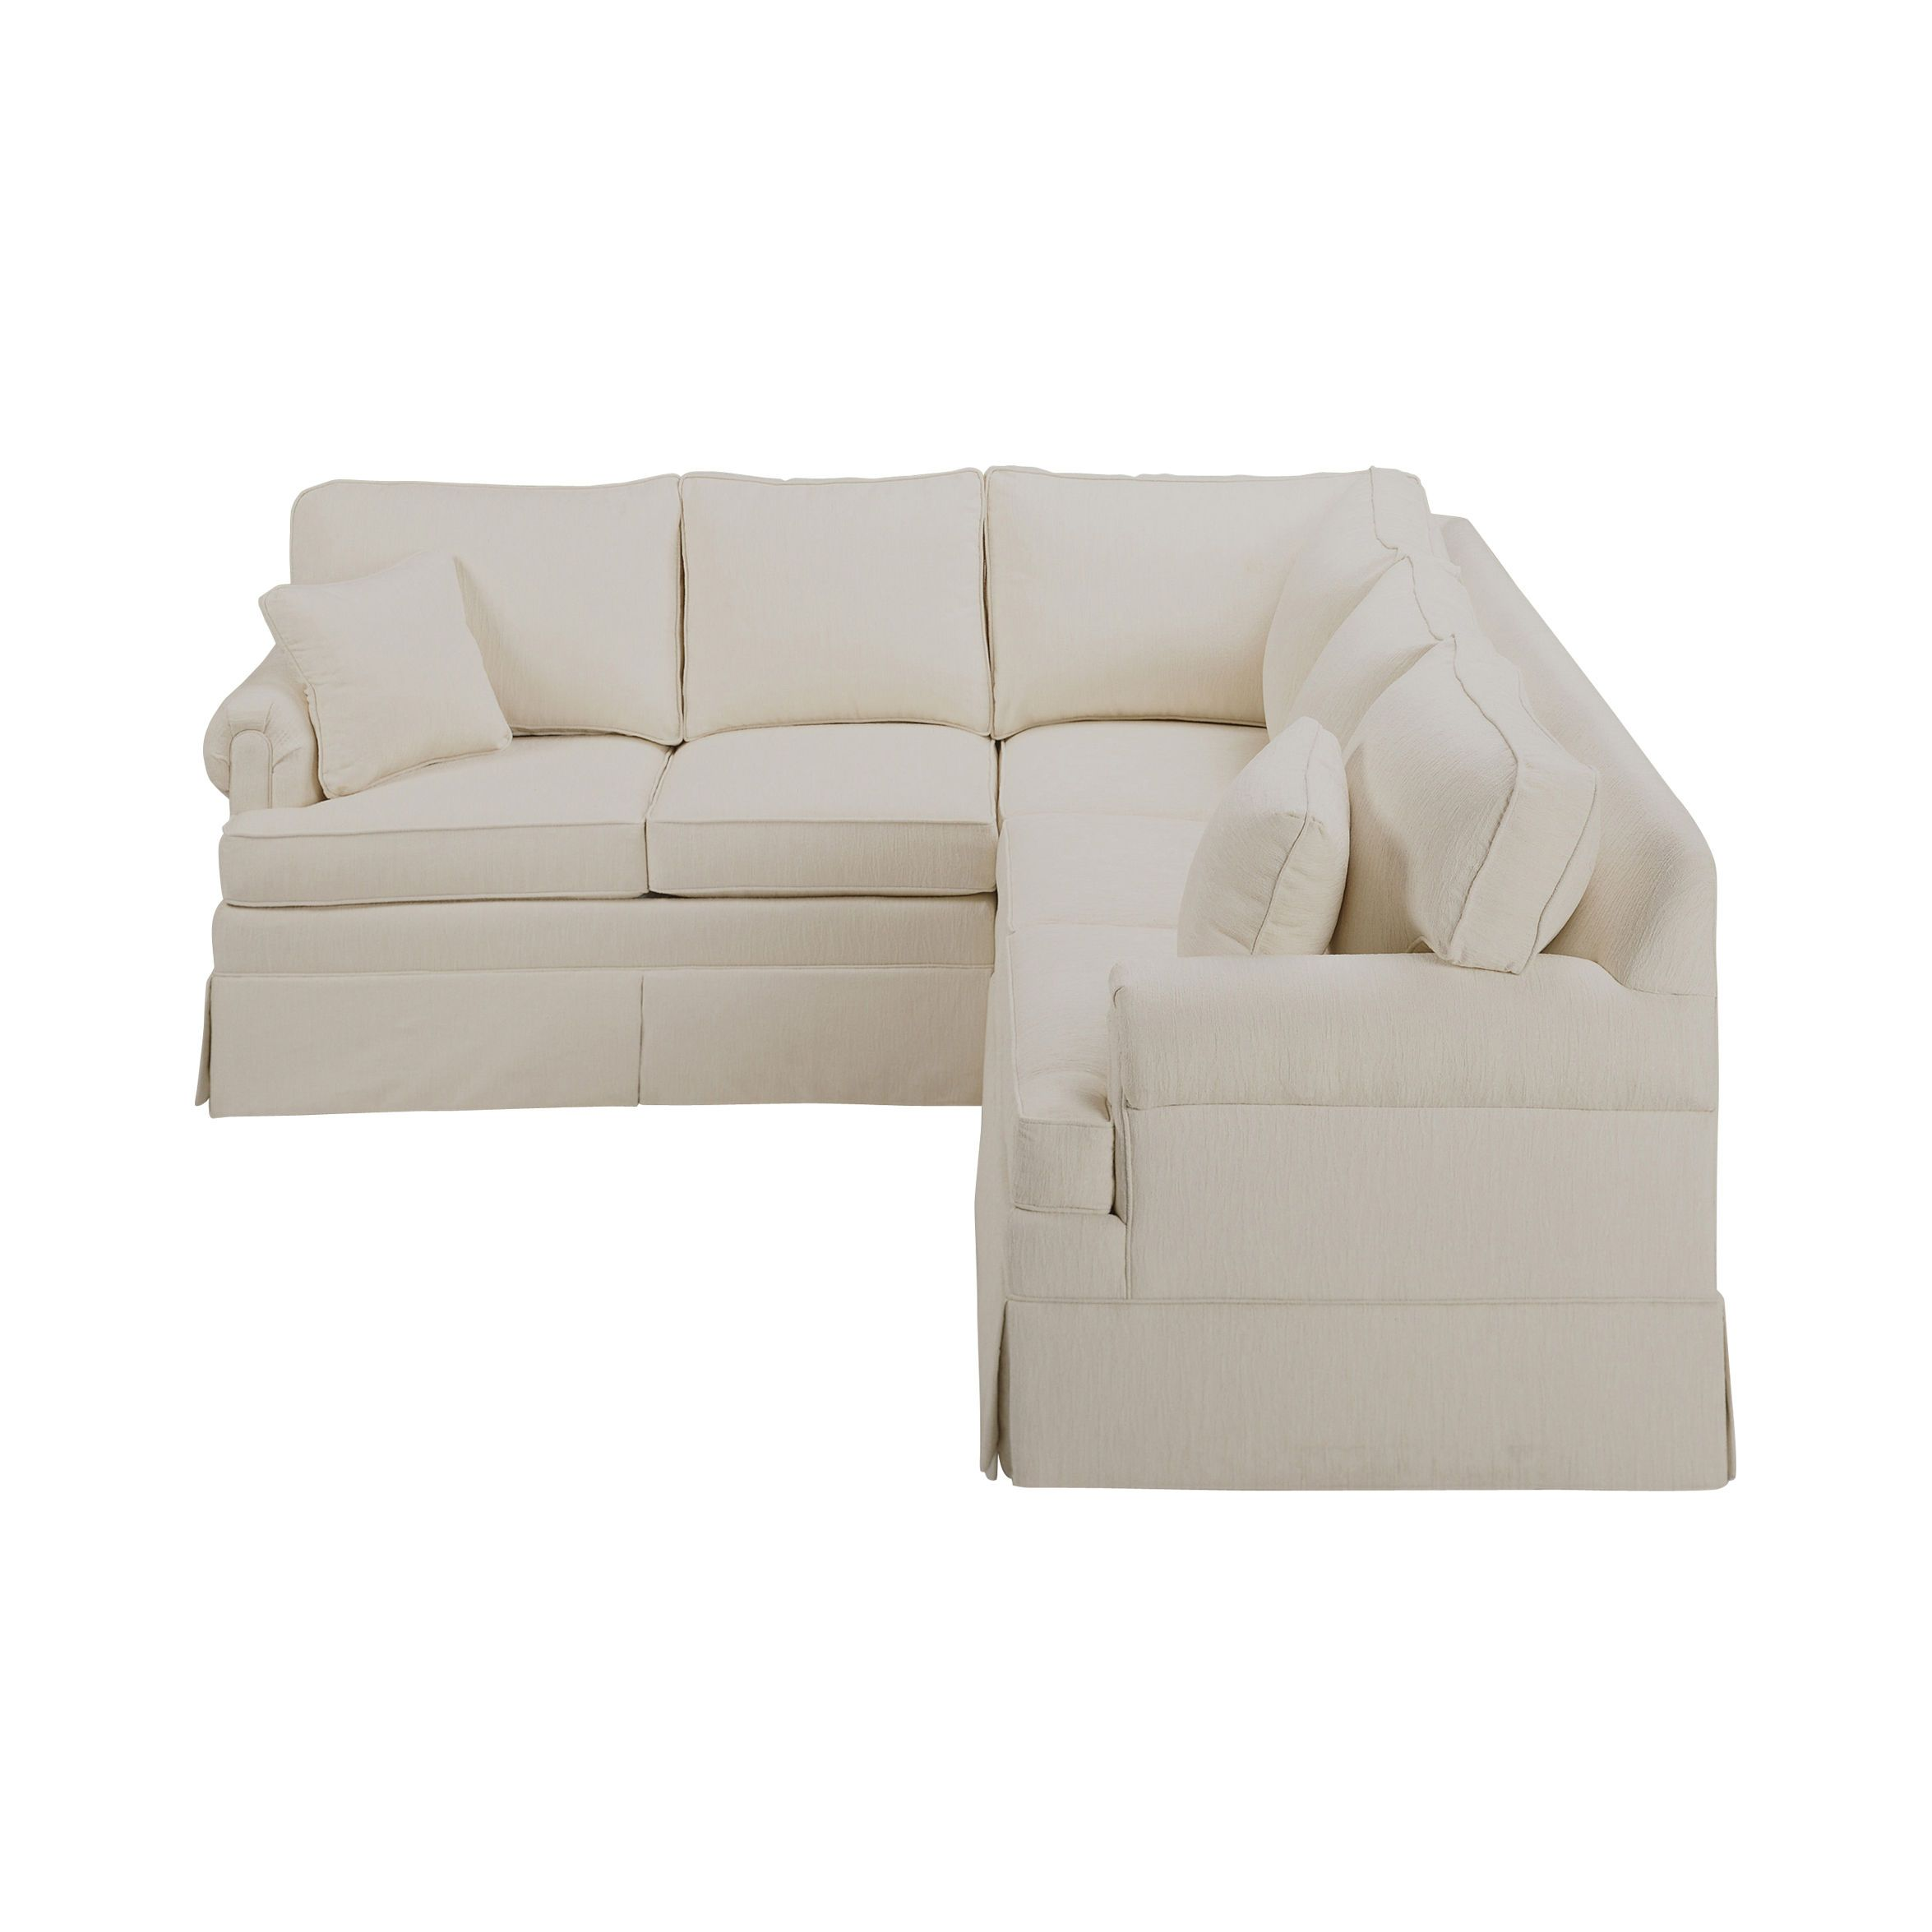 Paramount Sectional Ethan Allen Us 87 X 87 Good